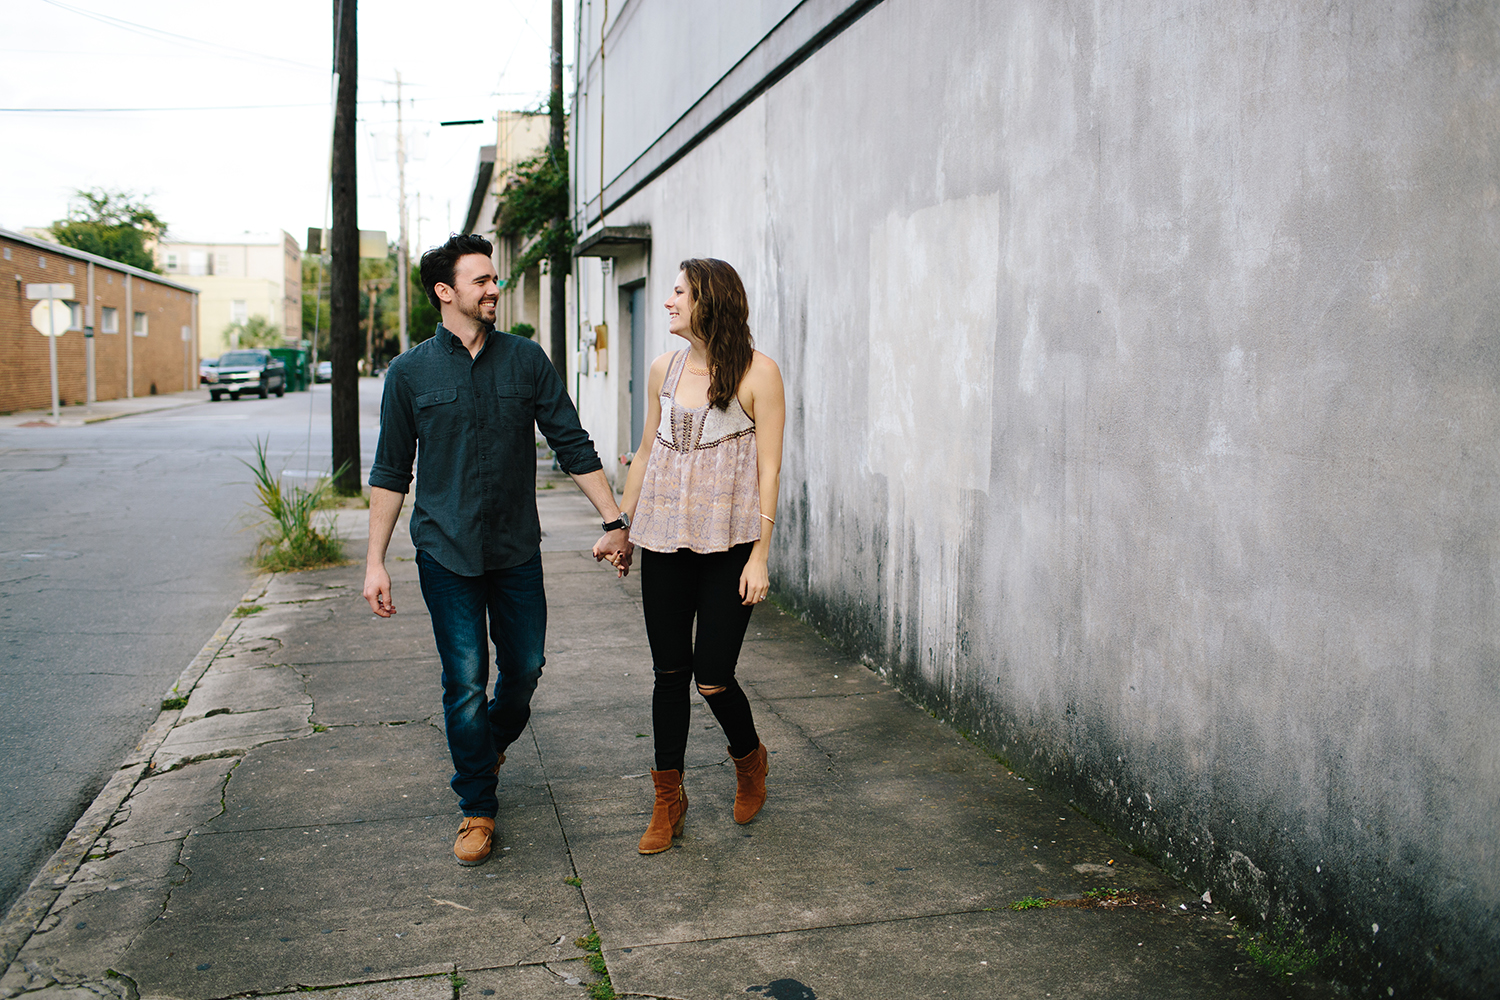 karliwillengaged - alicia white photography-222.jpg